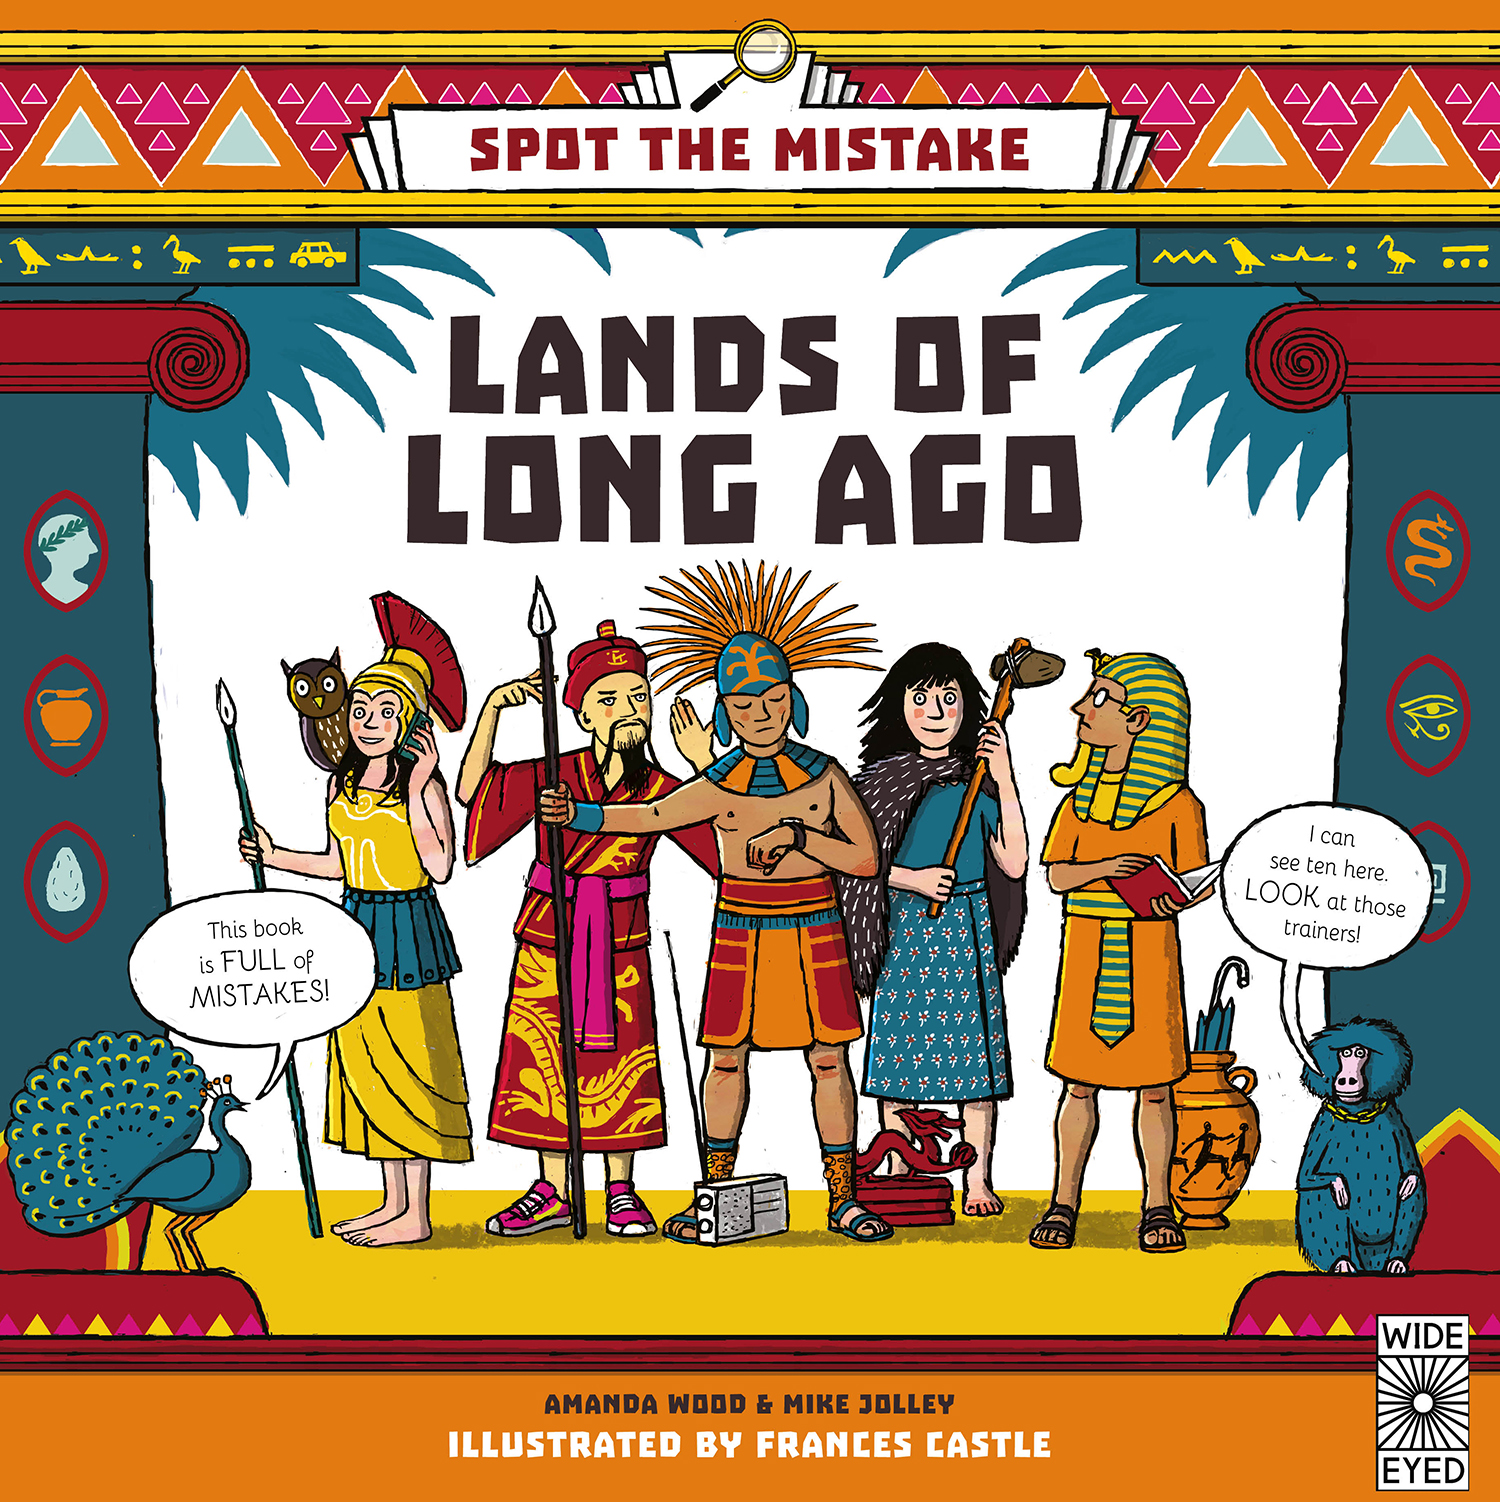 spot the mistake lands of long ago cover2.jpg